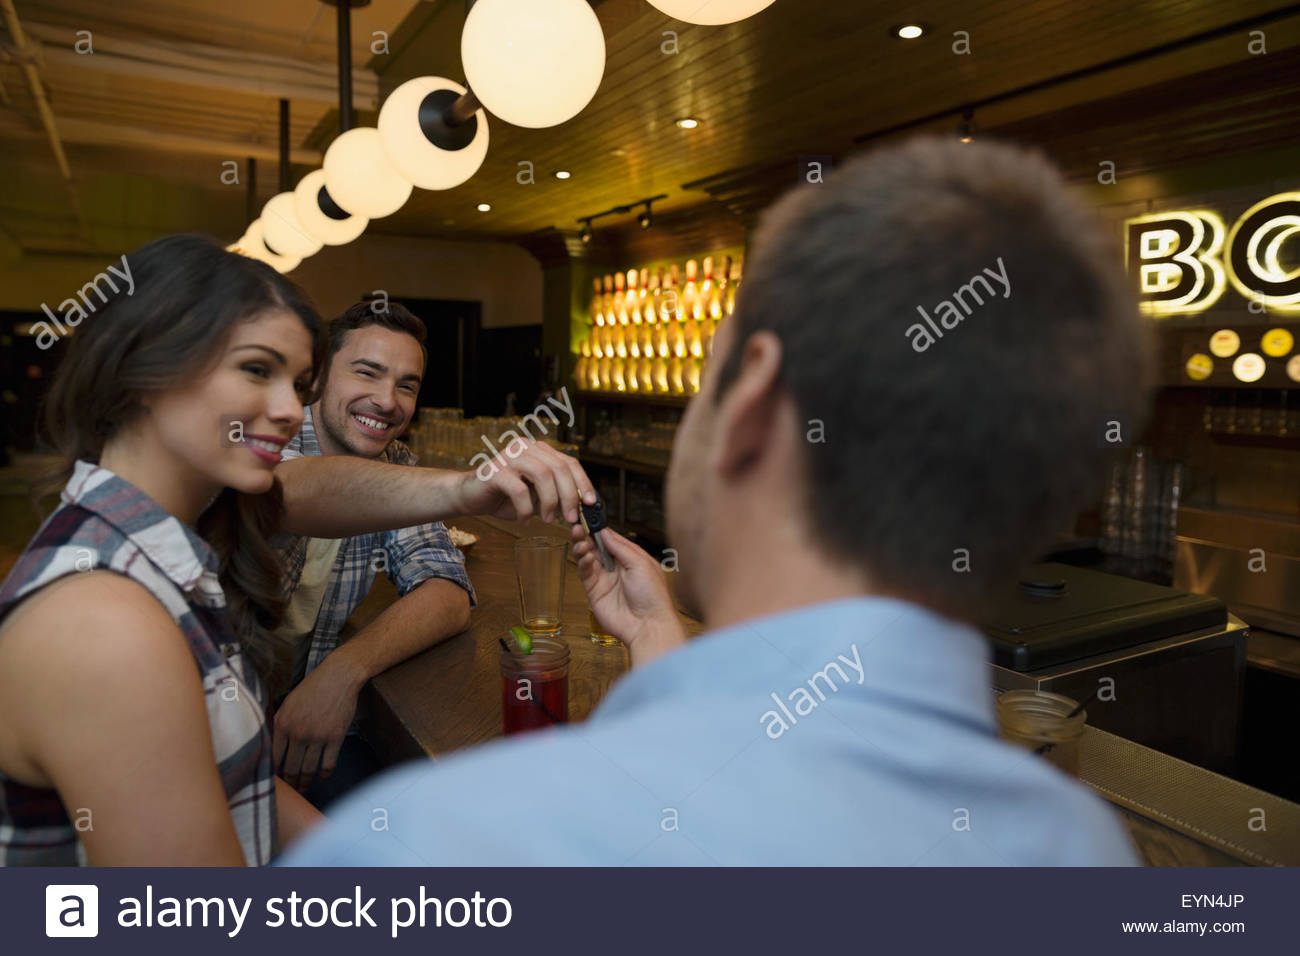 Friends drinking hanging out at bowling alley bar - Stock Image